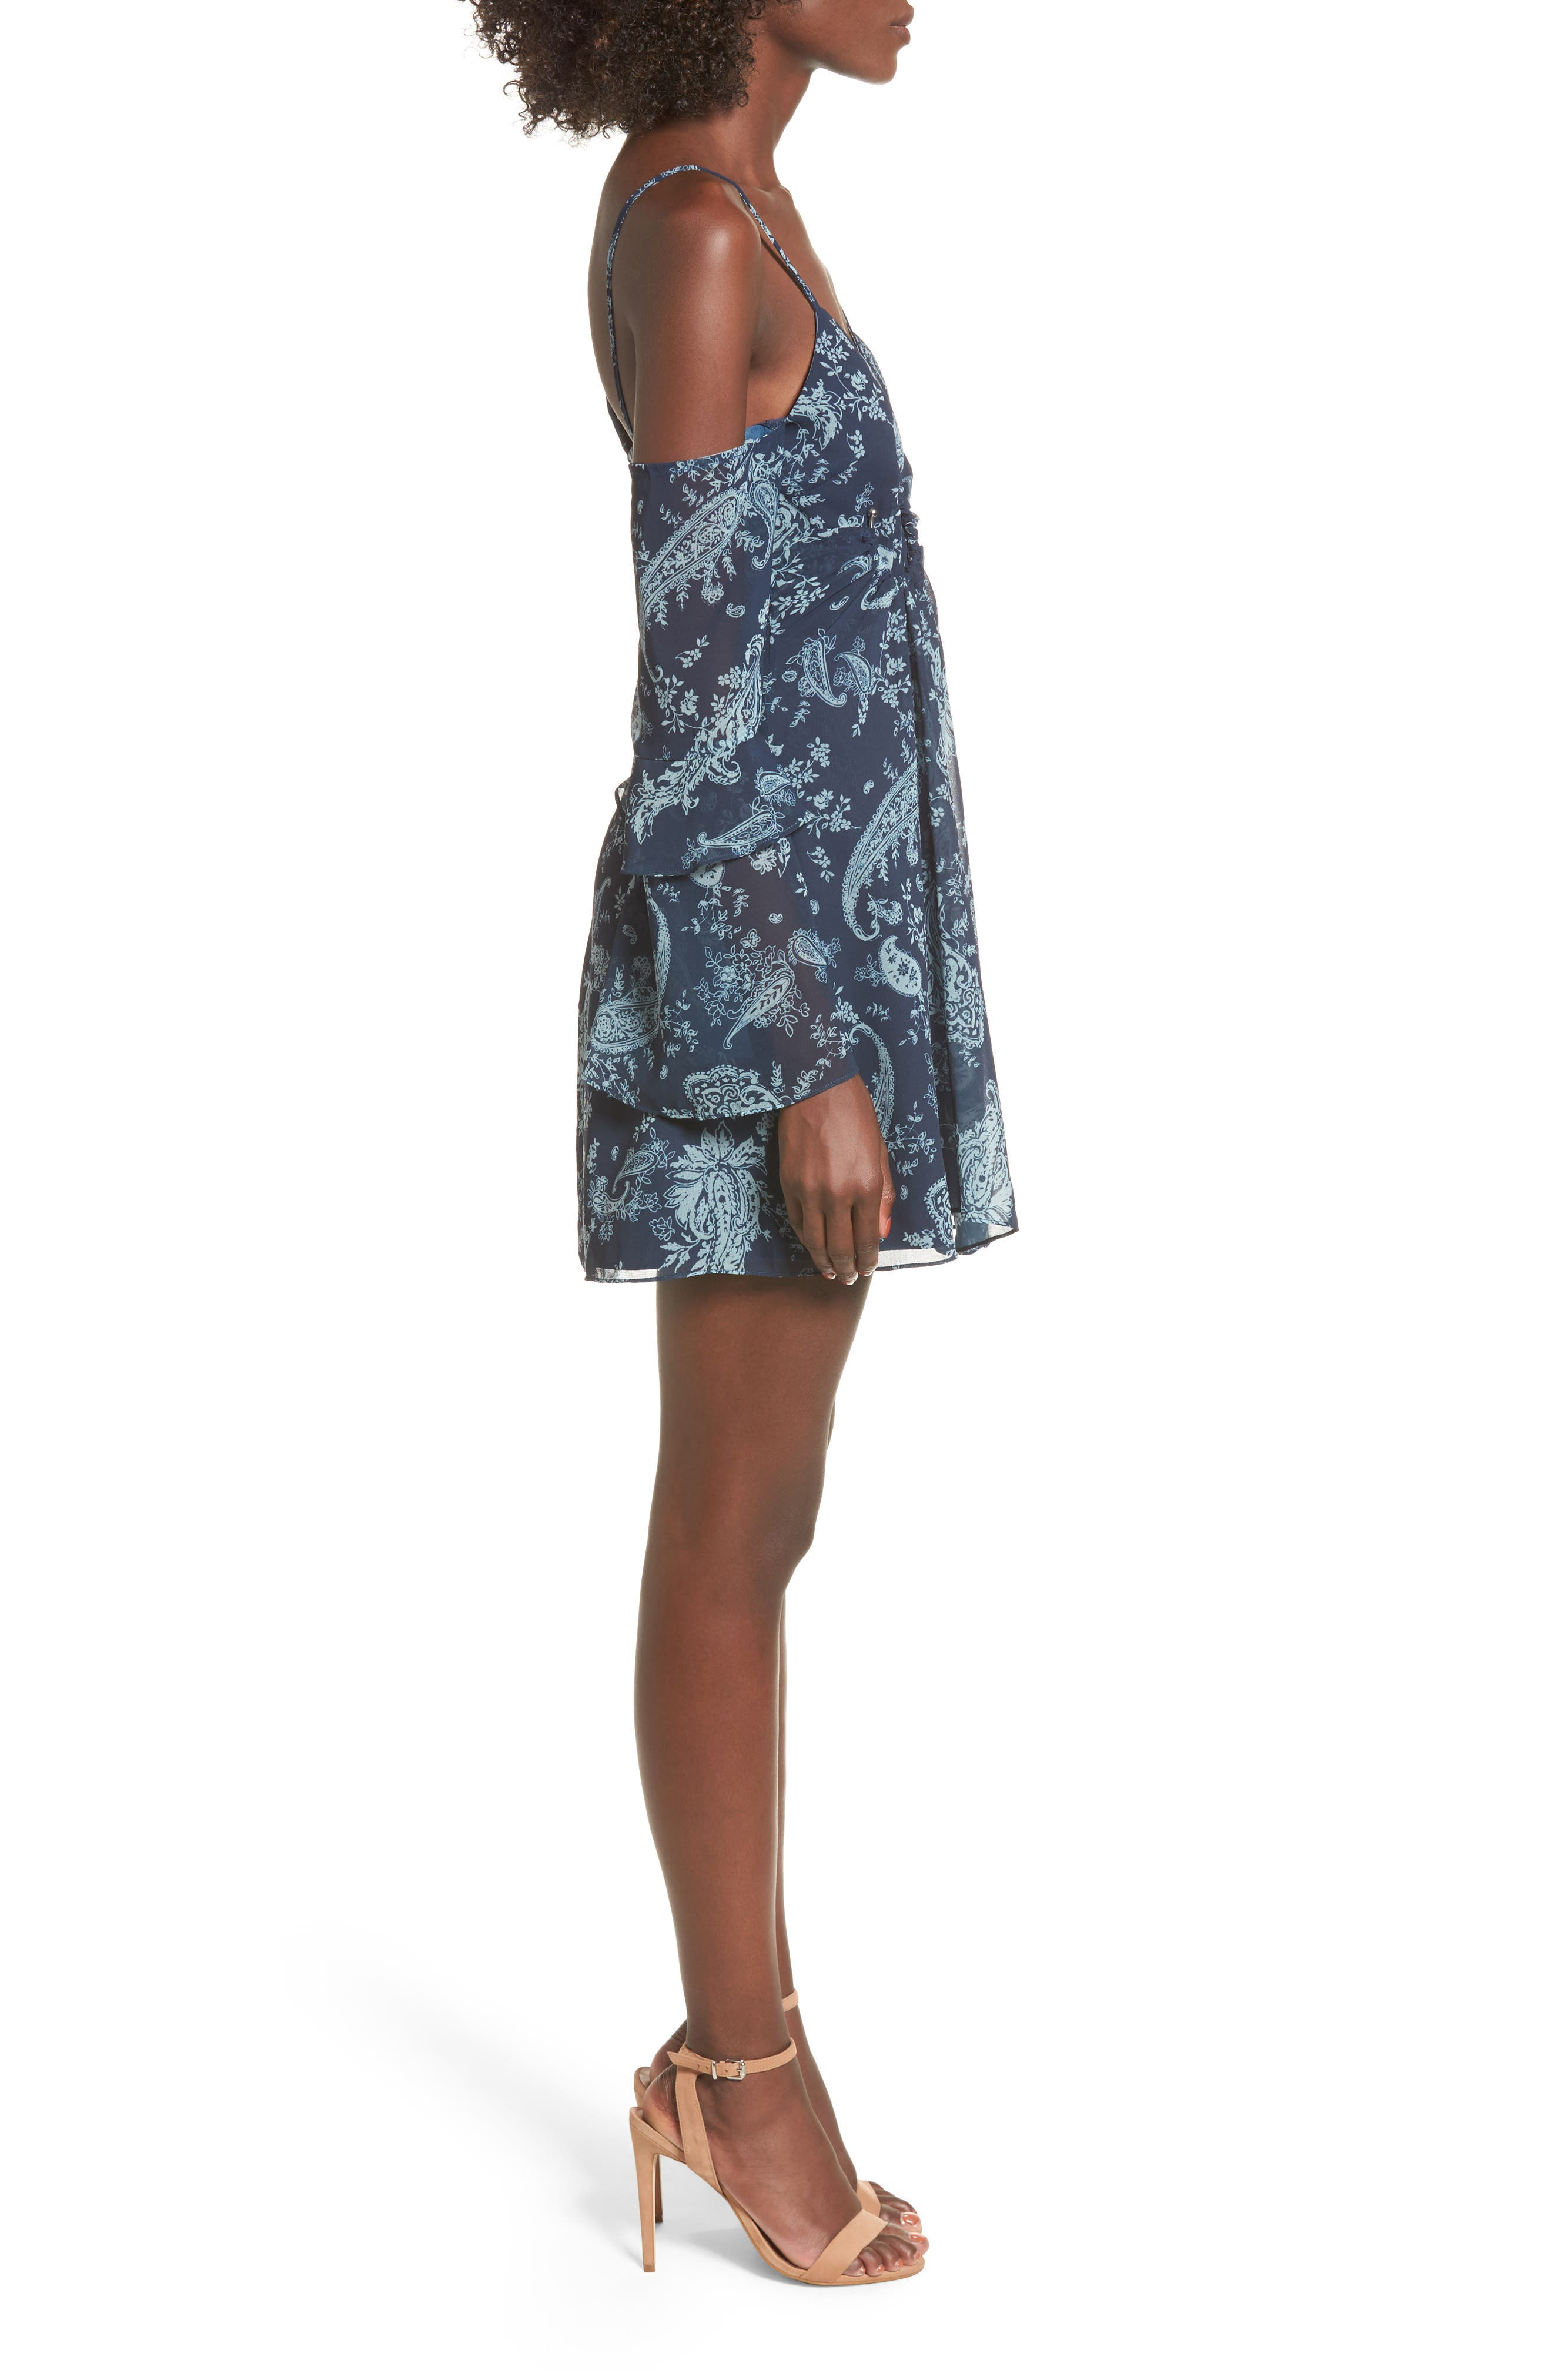 Go With It Minidress,                             Alternate thumbnail 3, color,                             Navy Paisley